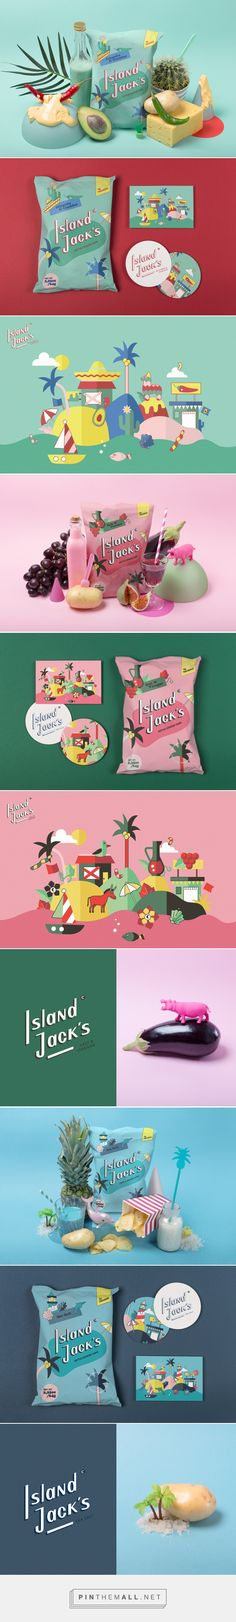 Island Jack´s Kettle Chips Packaging by Alessia Sistori, Lilly Friedeberg, and Marc Oortman | Fivestar Branding Agency – Design and Branding Agency & Curated Inspiration Gallery #packaging #packagingdesign #packages #packagedesign #design #designinspiration